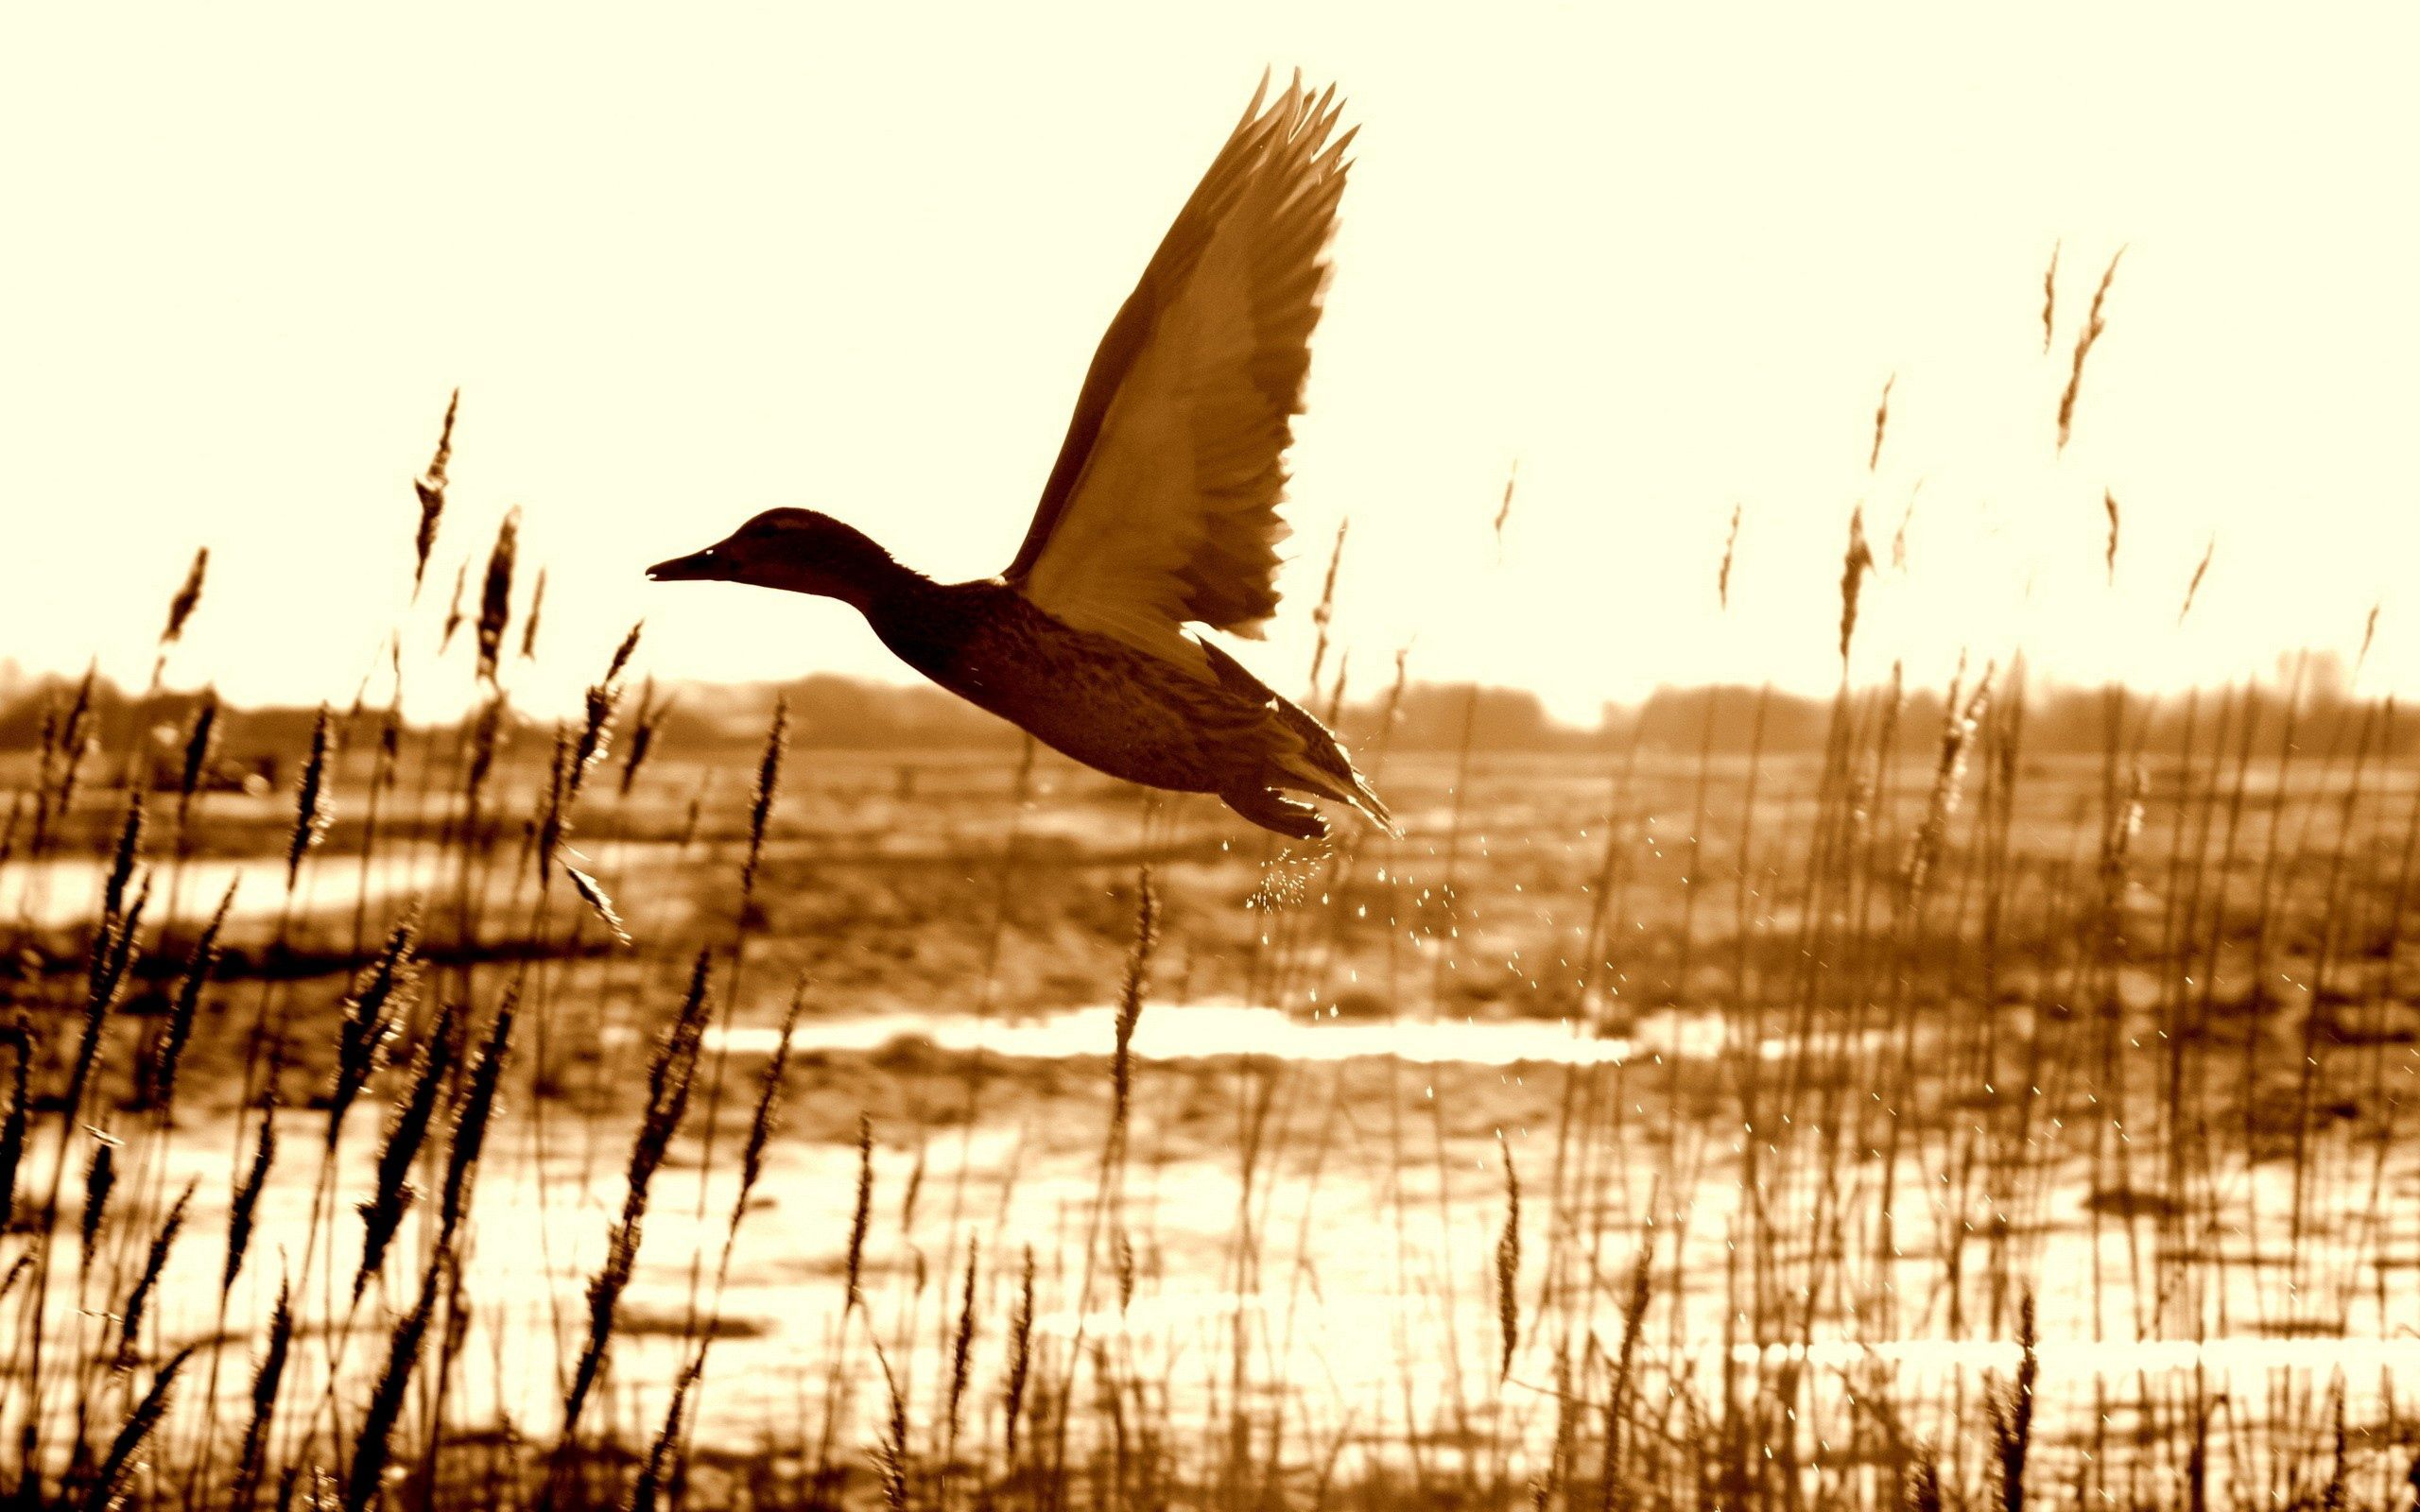 66597 download wallpaper Animals, Duck, Lake, Grass, Flight screensavers and pictures for free